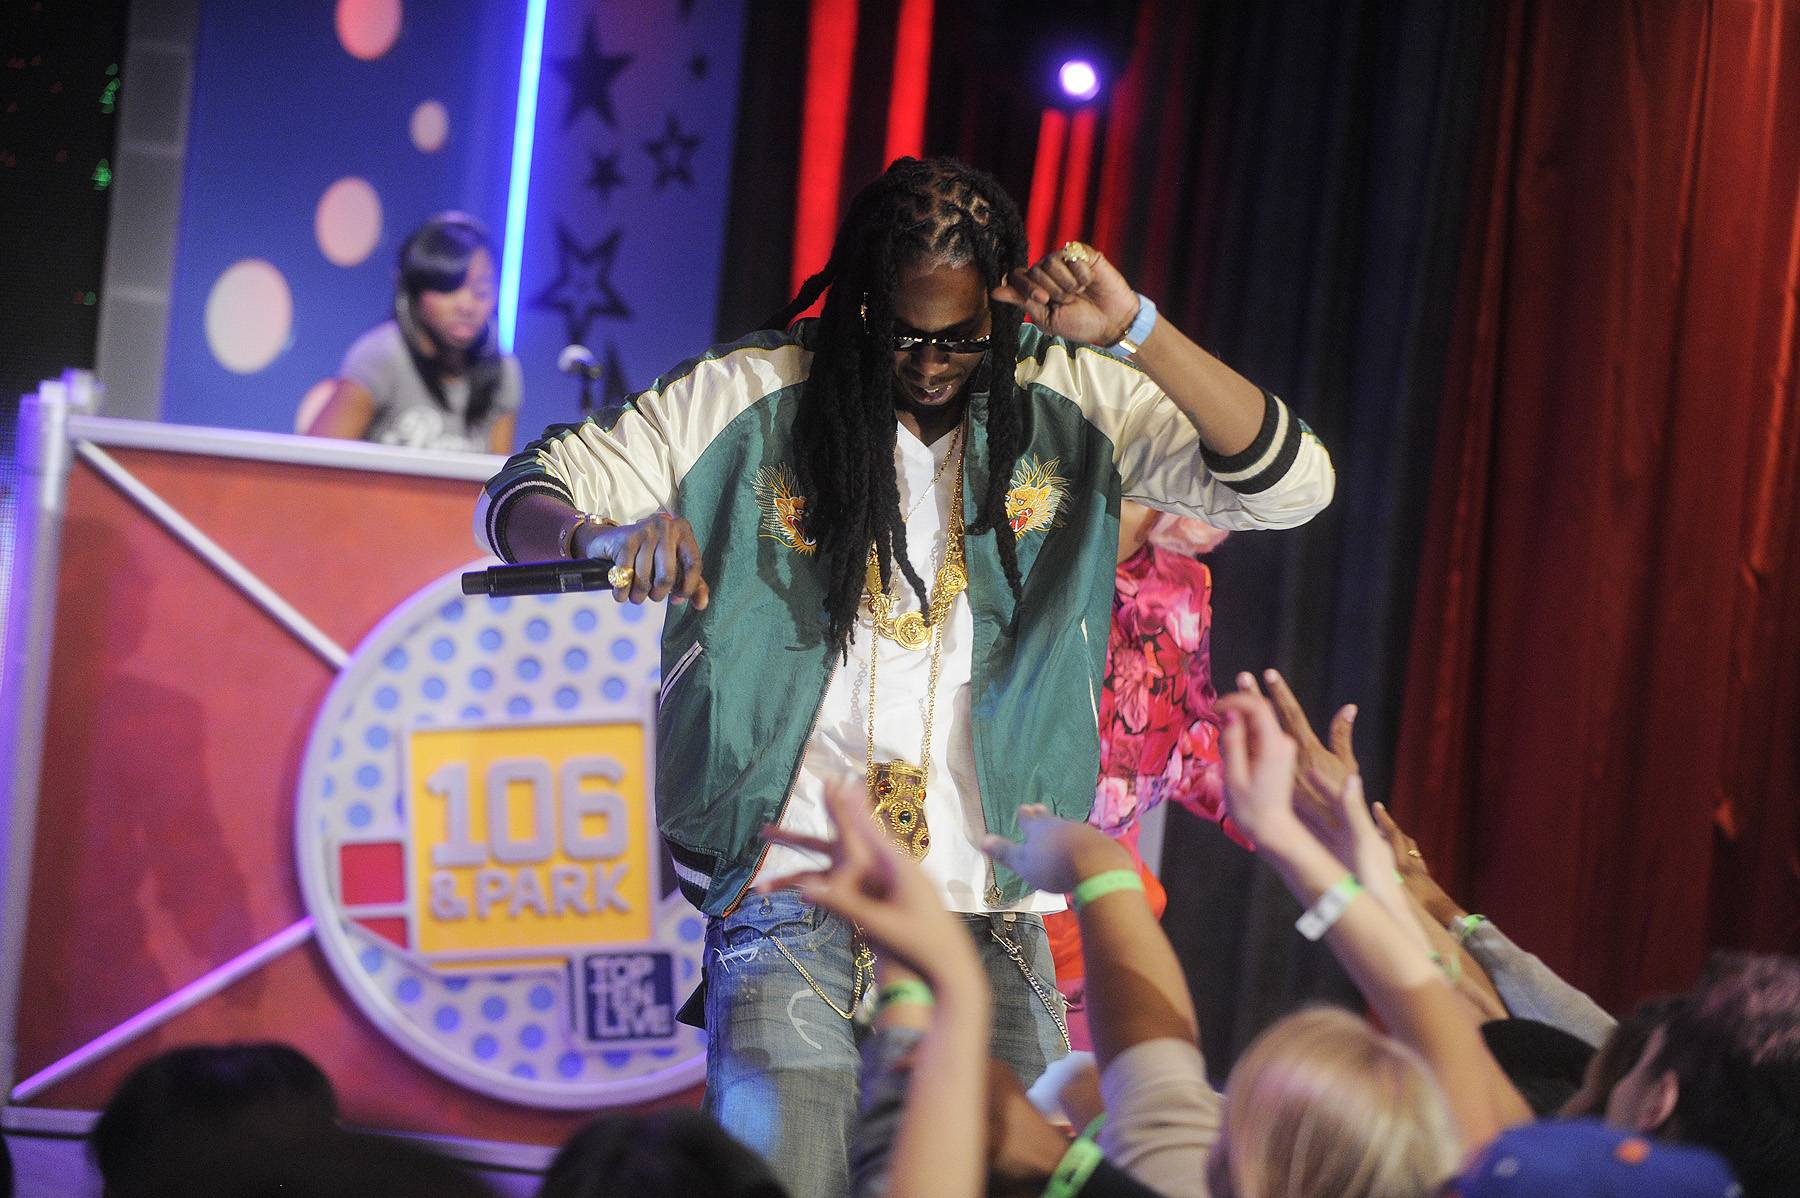 Nicki Co-Signs the 2 Chainz Movement - As if 2 Chainz wasn't already putting in work, Nicki Minaj gave him the uber co-sign during her appearance on 106 & Park last week. Go 2 Chainz!(Photo: John Ricard/BET)